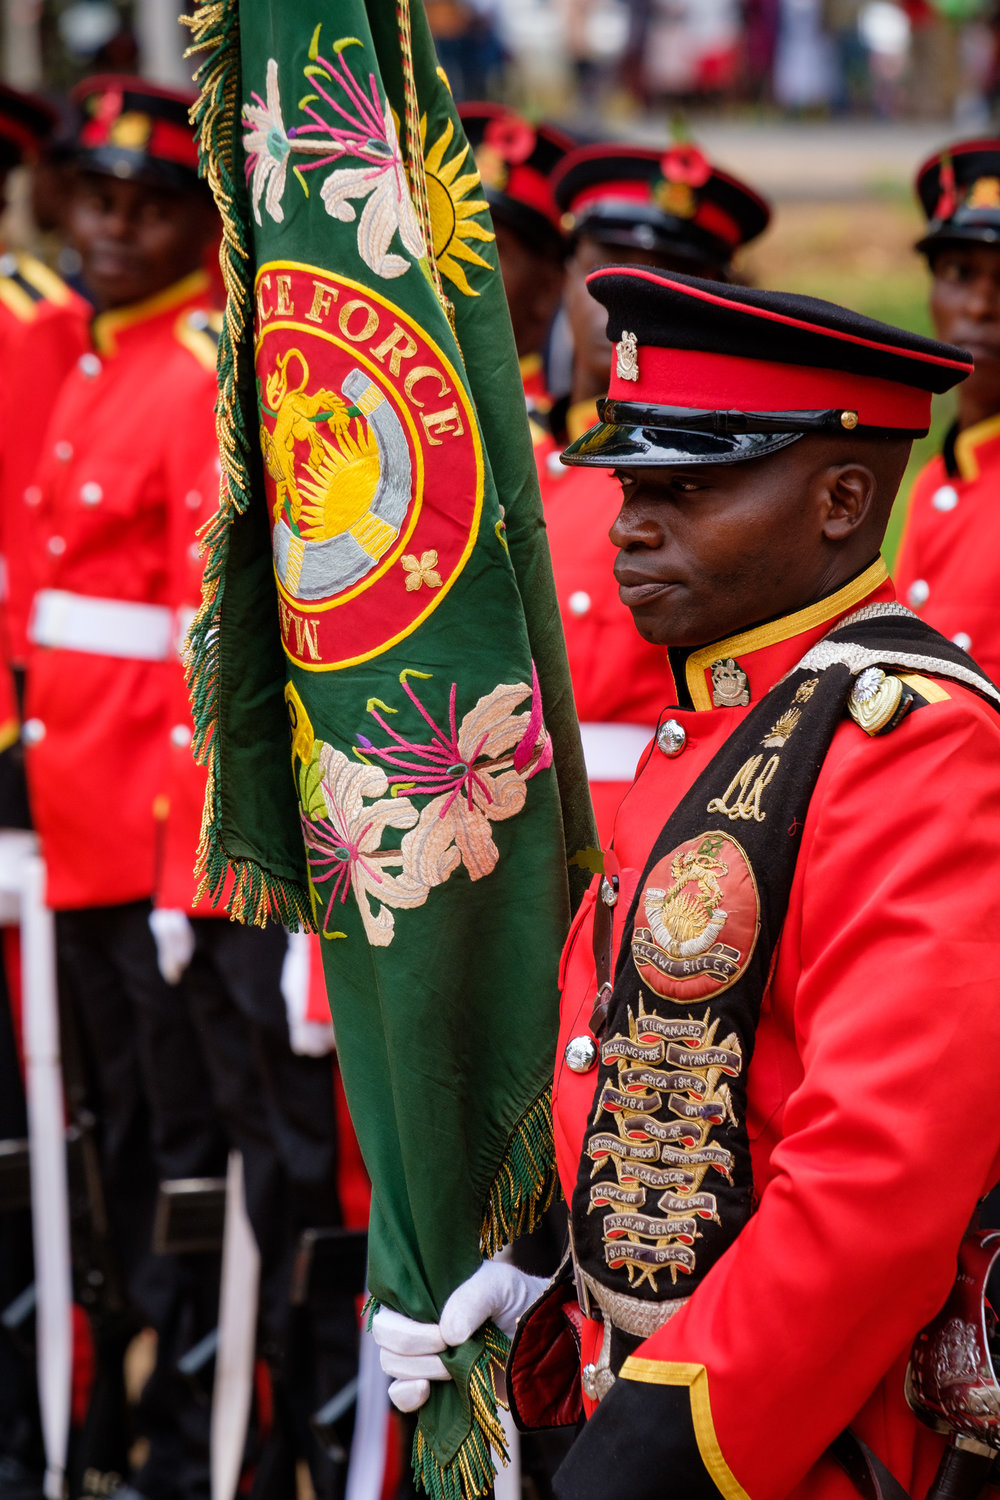 The 1st Malawi Rifles Battalion has military unit honors dating back to World War I